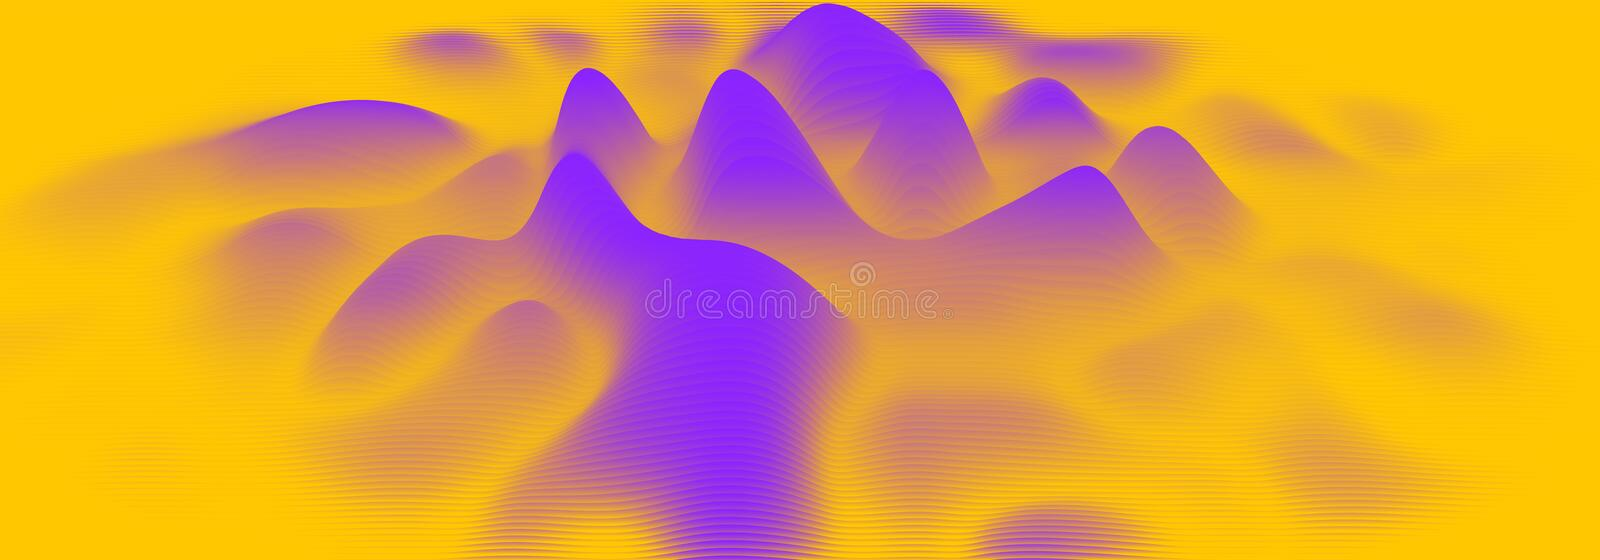 Vector 3d echo audio wavefrom spectrum. Music waves oscillation graph futuristic visualization. Orange line impulse royalty free illustration